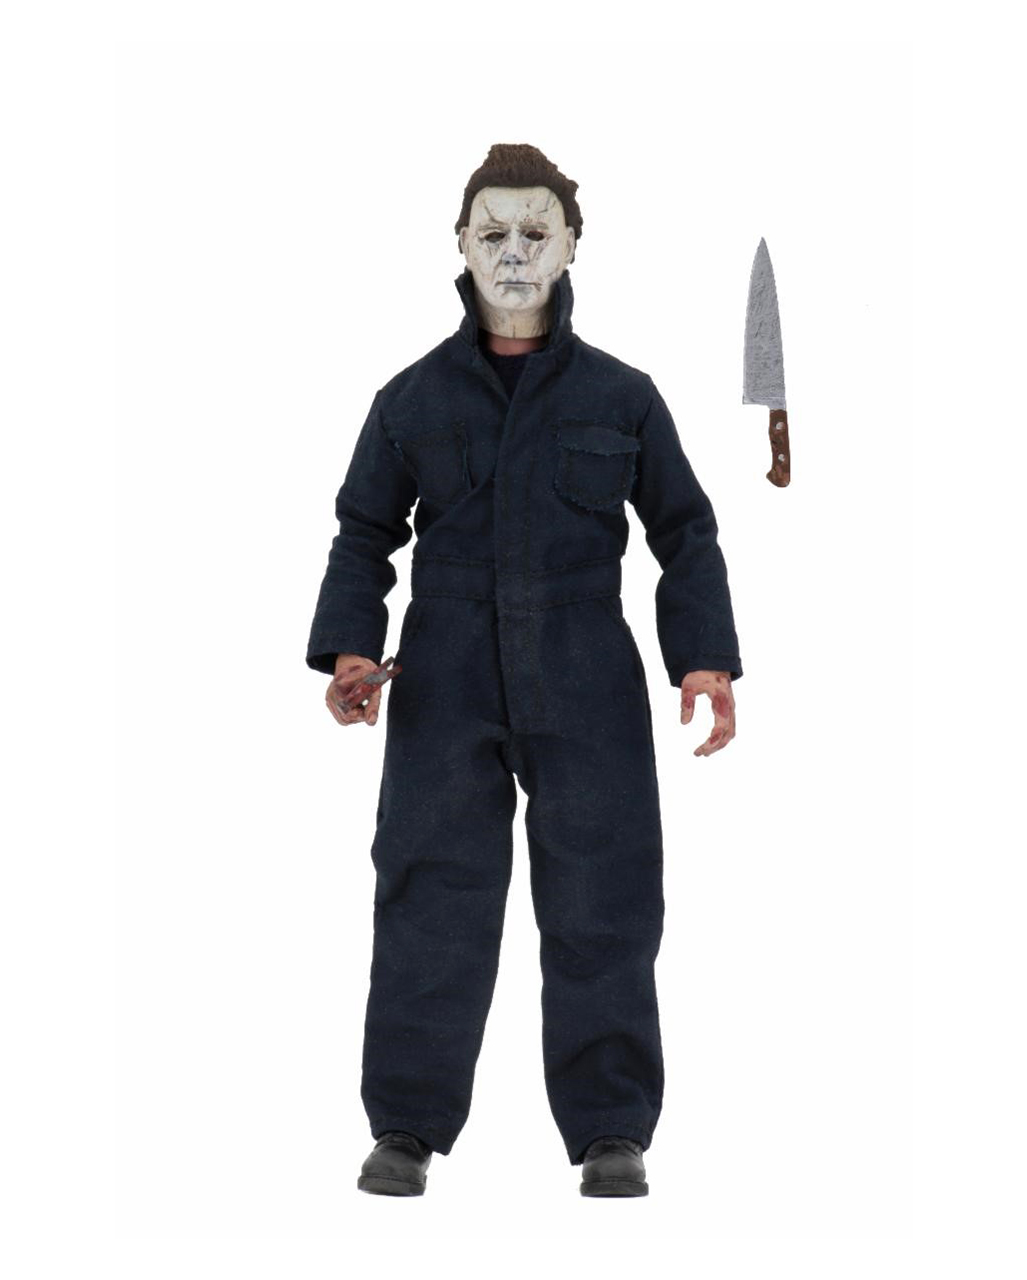 Halloween - Michael Myers Action Figur 21 cm kaufen